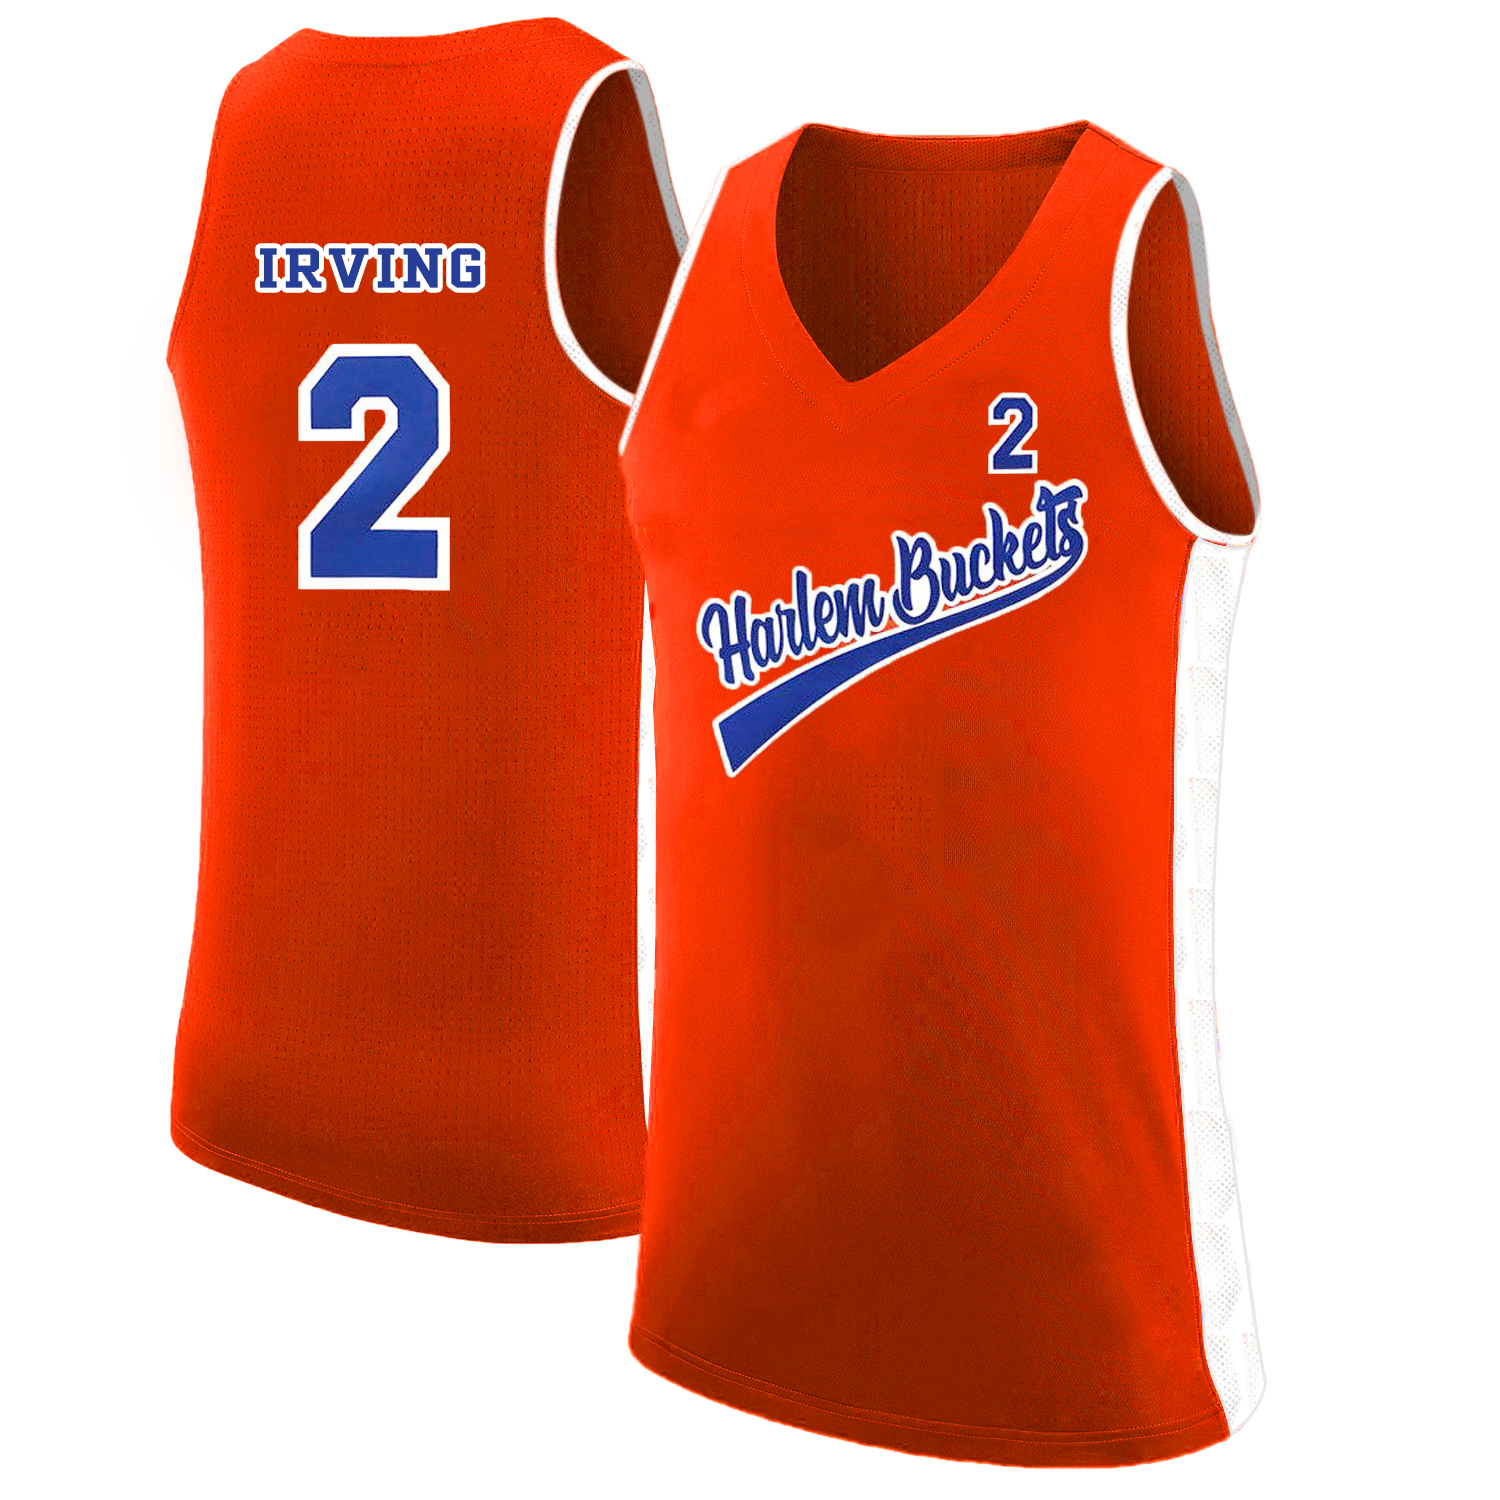 Harlem Buckets 2 Kyie Irving Orange Uncle Drew Basketball Jersey